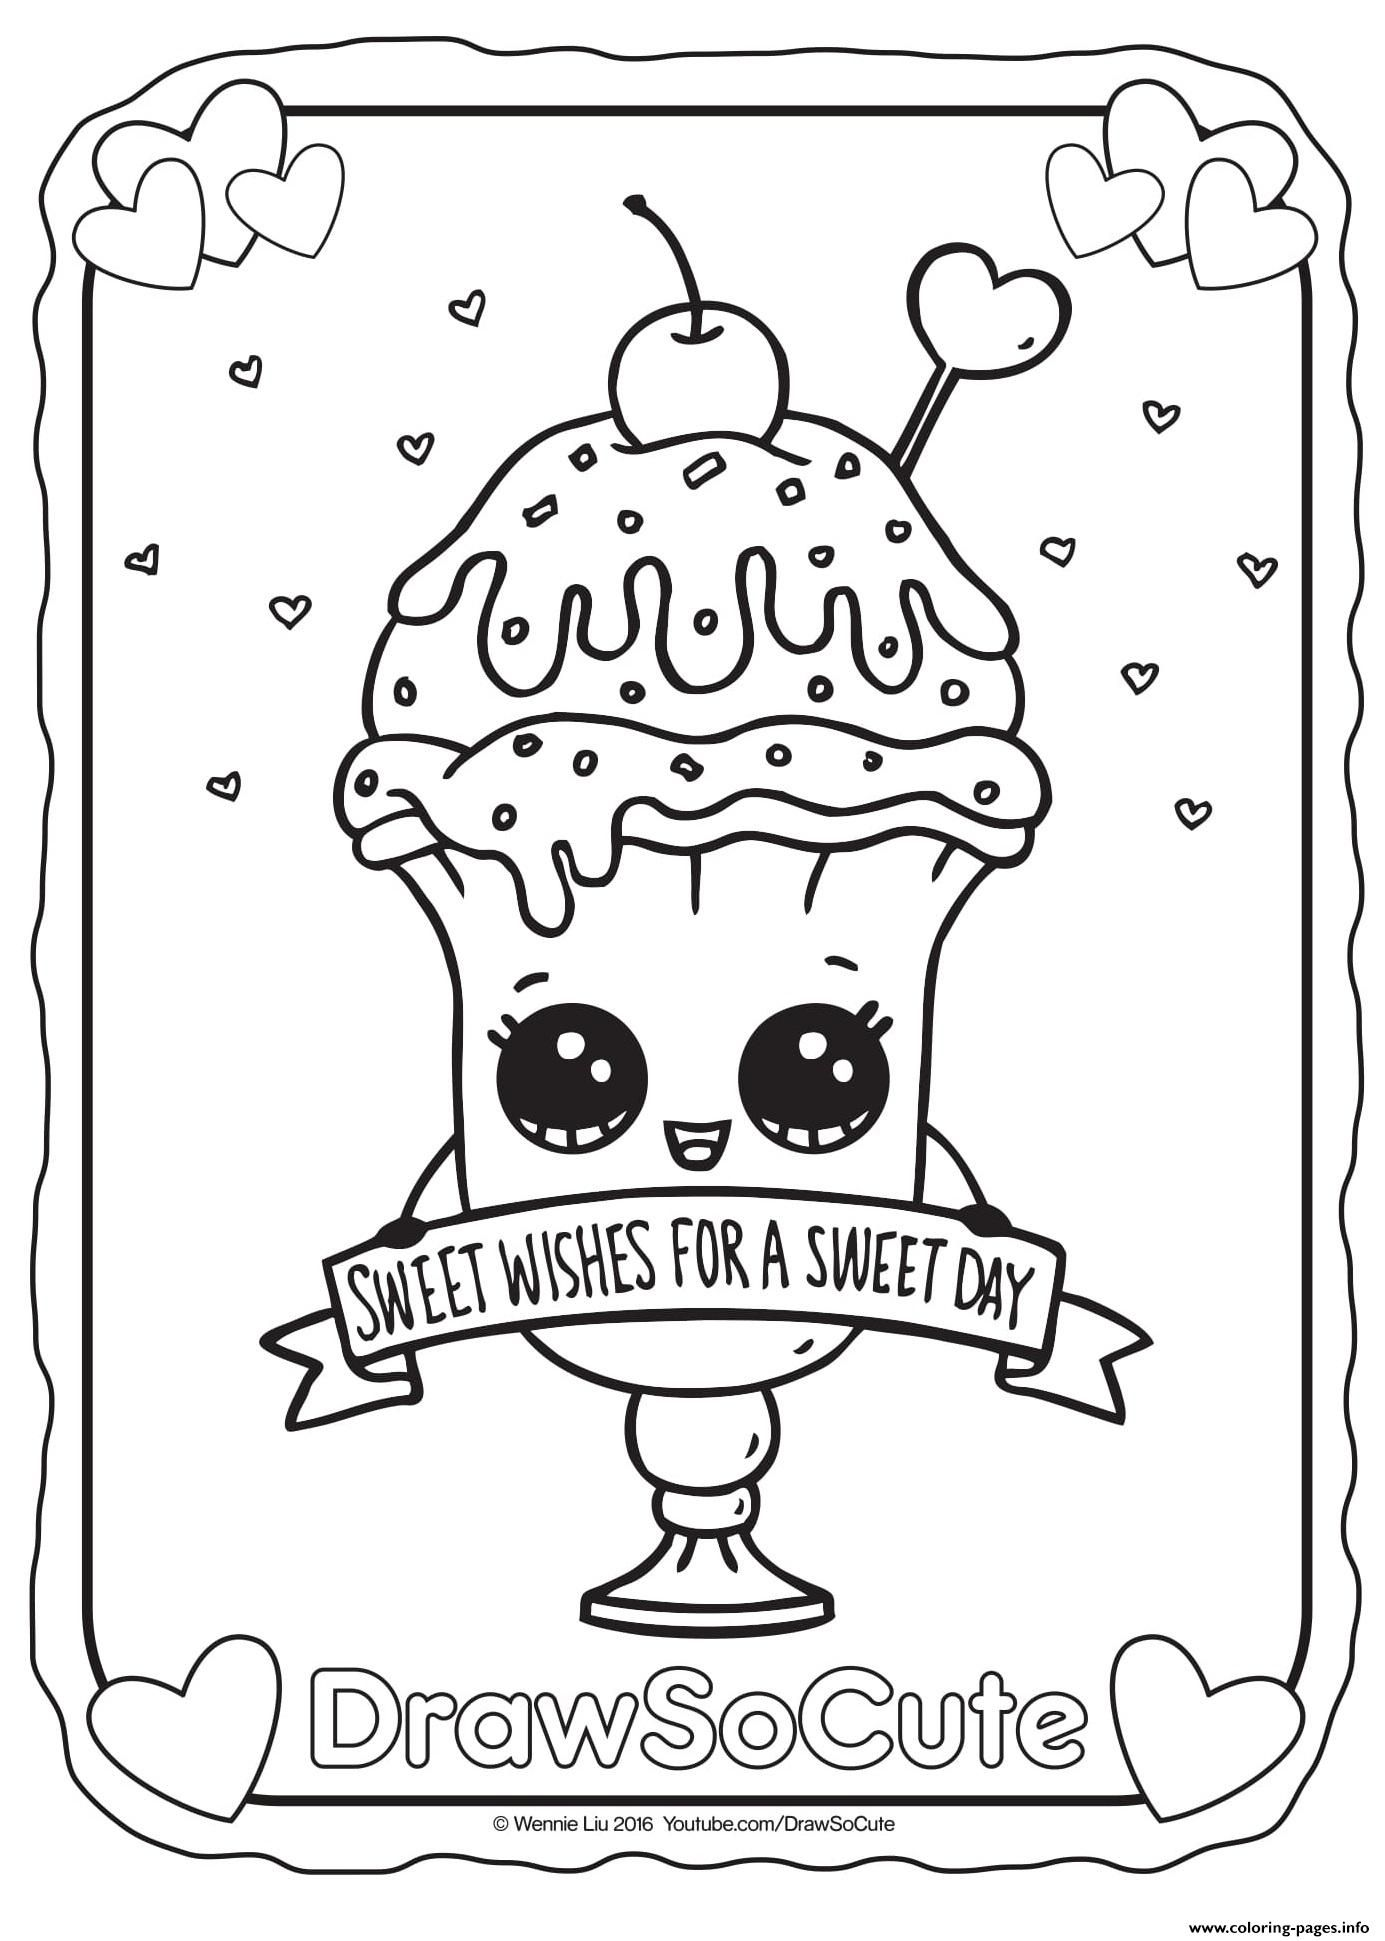 Draw so cute coloring pages 4 d sundae coloring page image clipart grig3